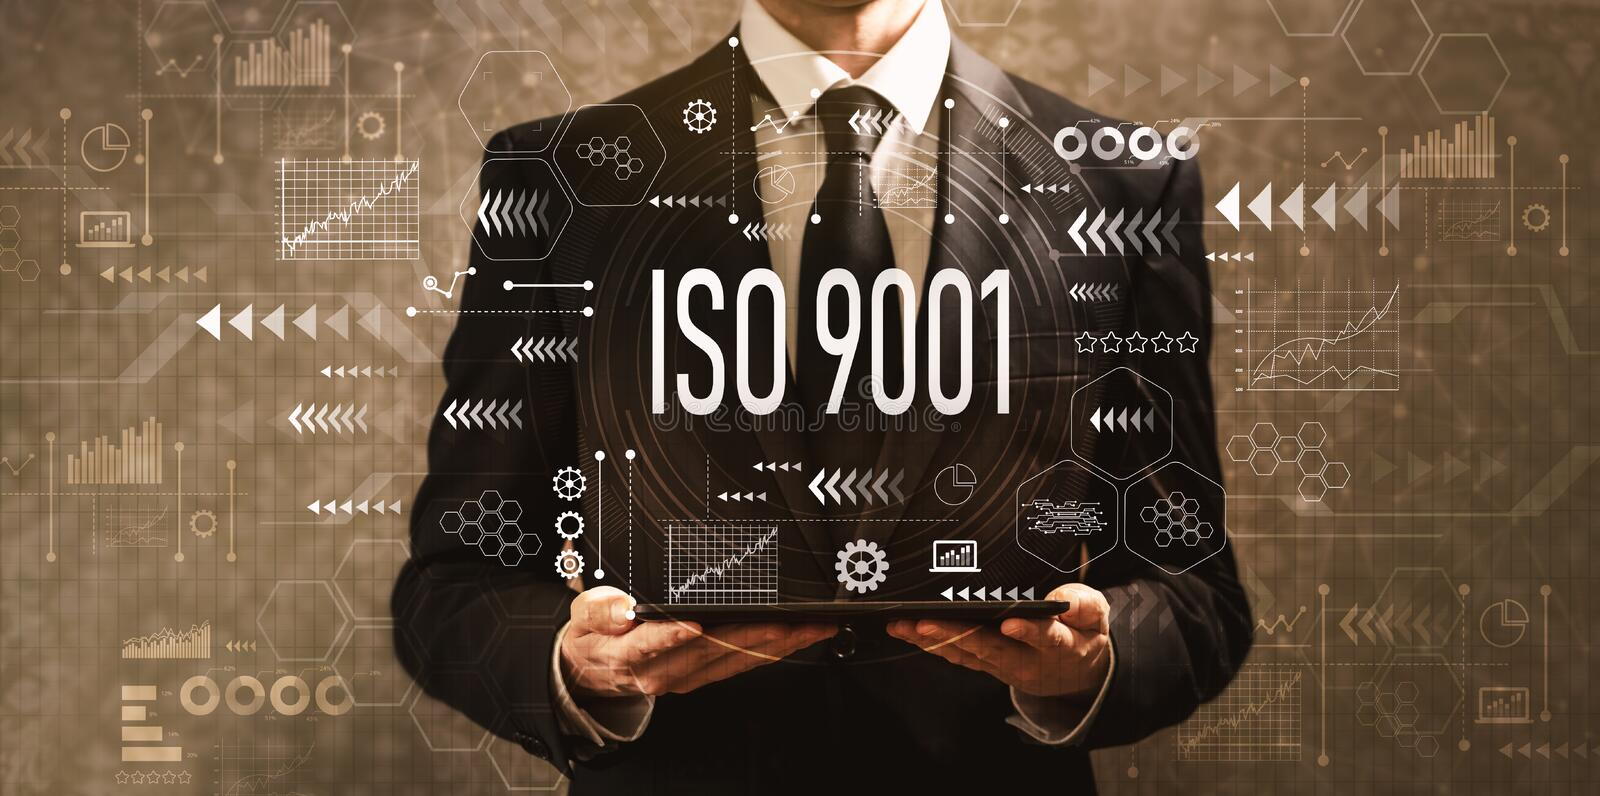 ISO 9001 with businessman holding a tablet computer royalty free stock images